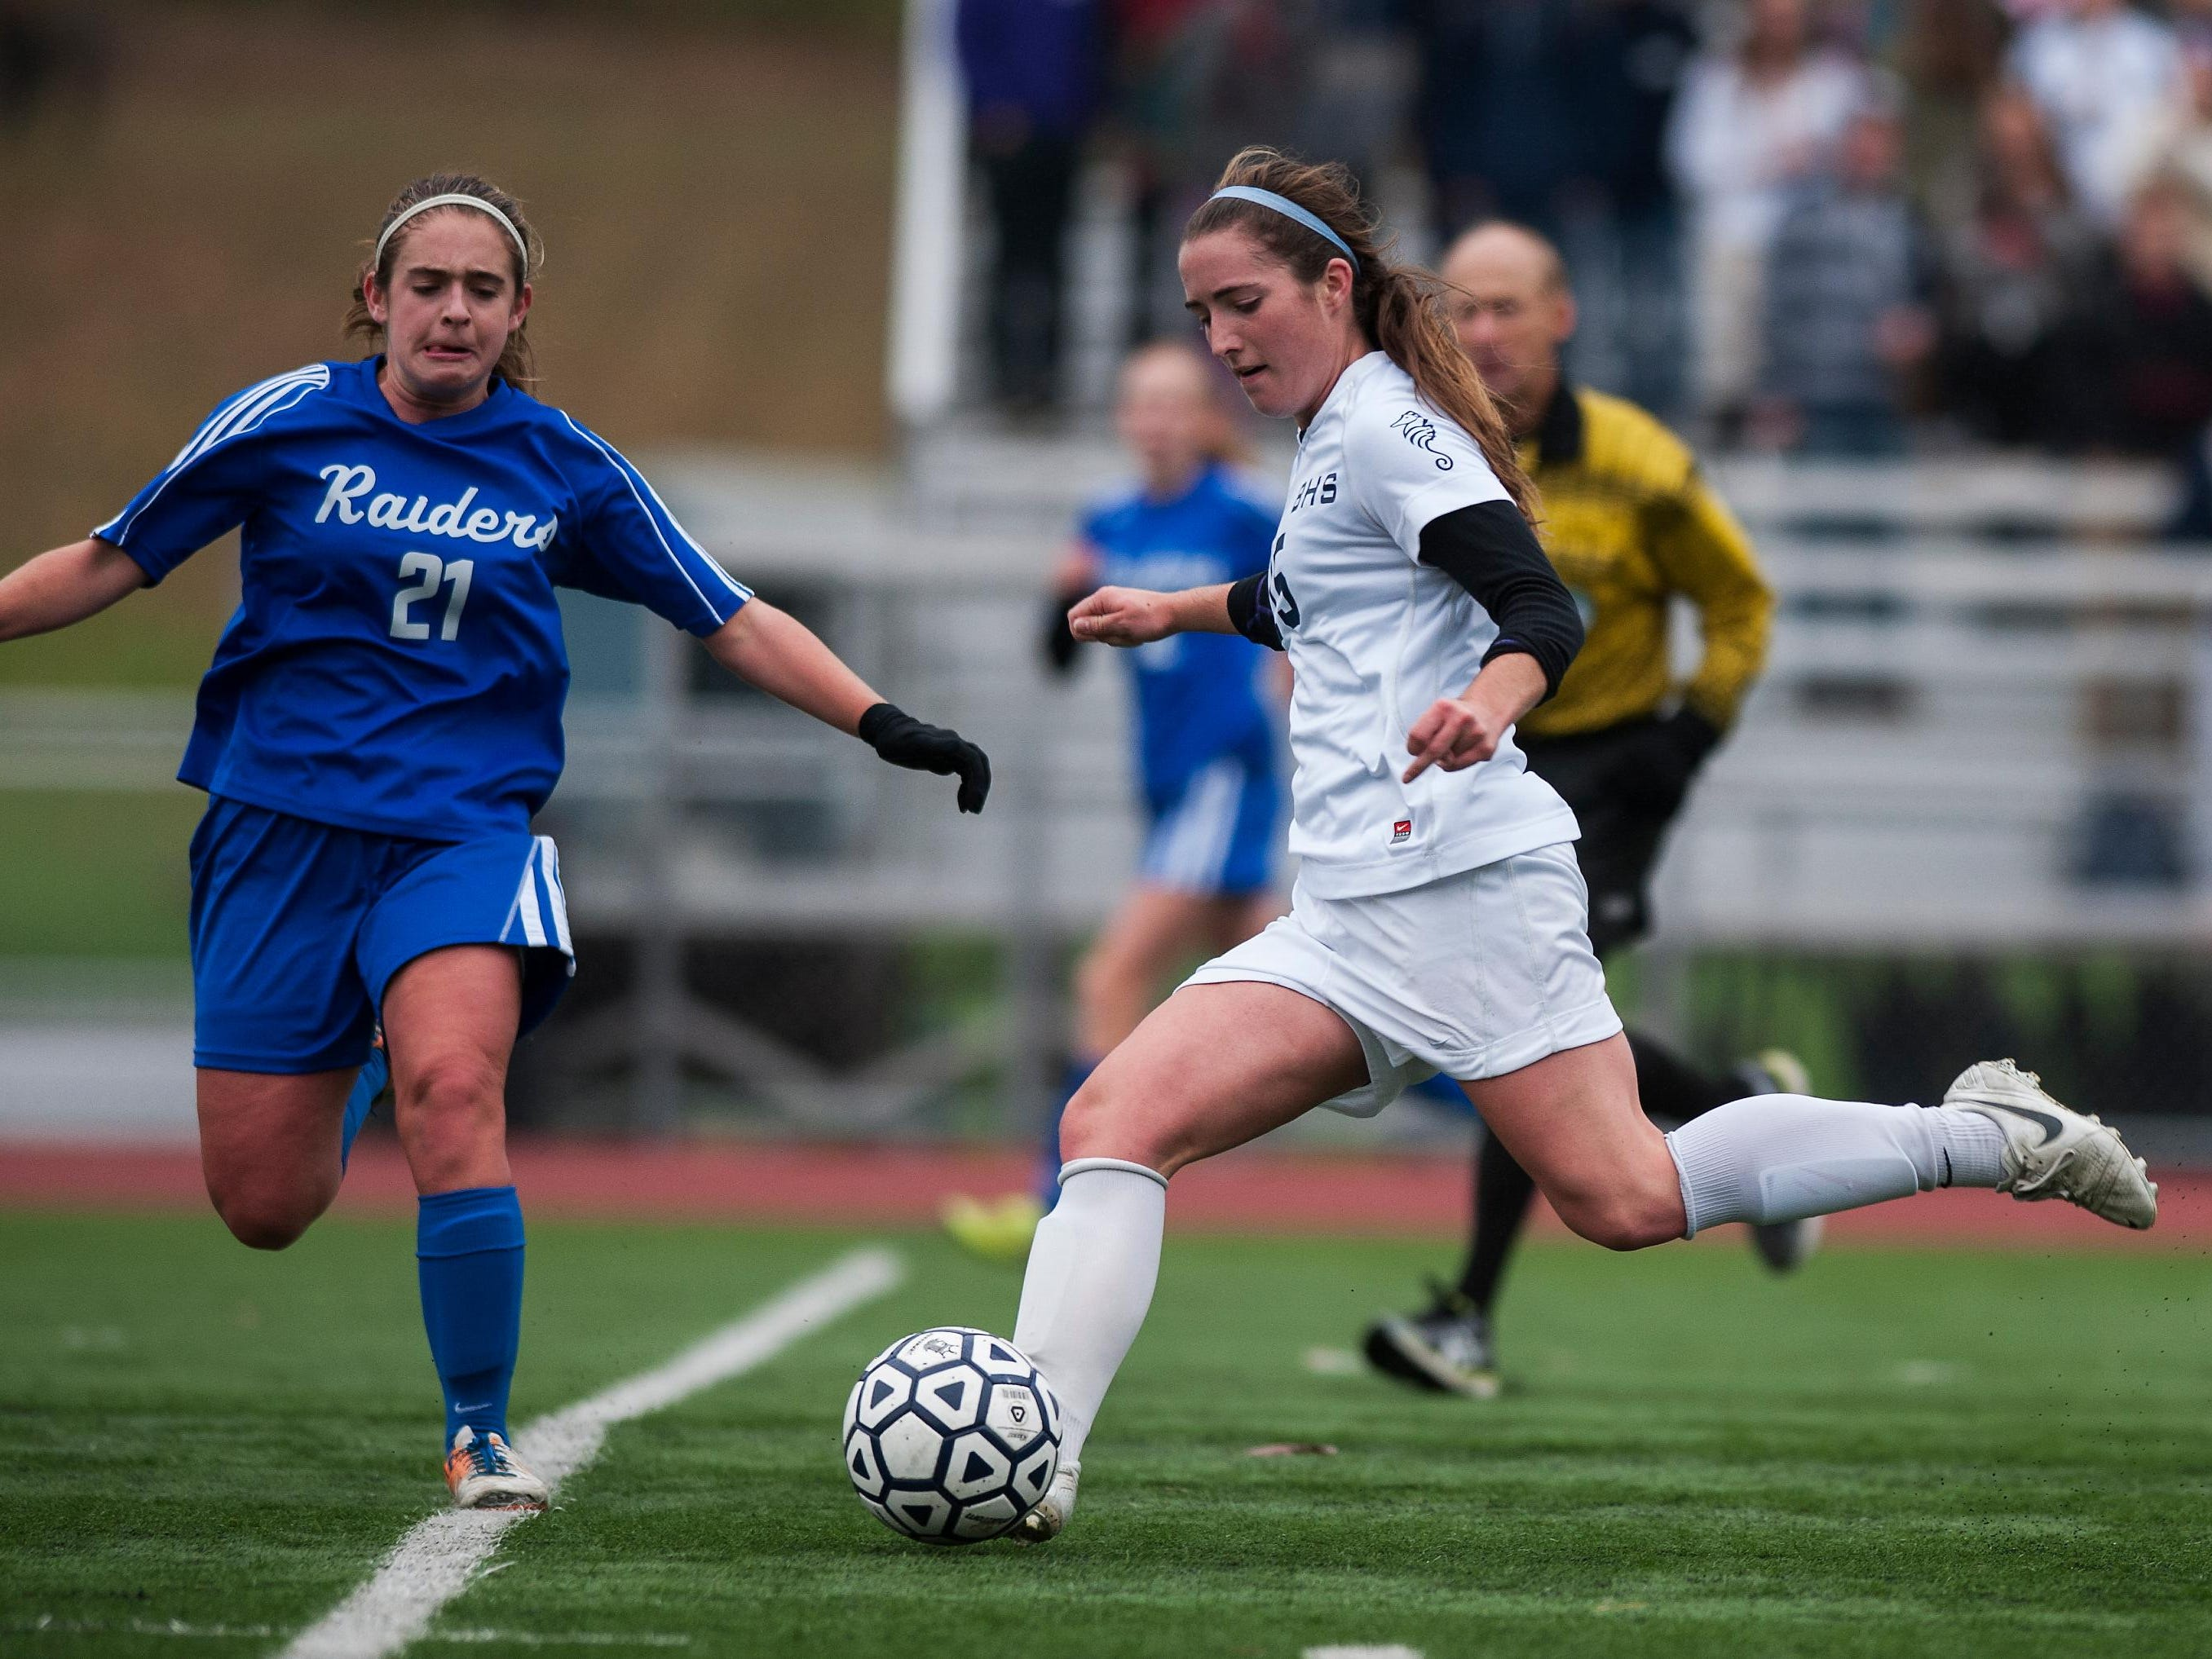 Burlington's Madison Feeney (15) takes a shot during a high school girls playoff soccer game in 2014.